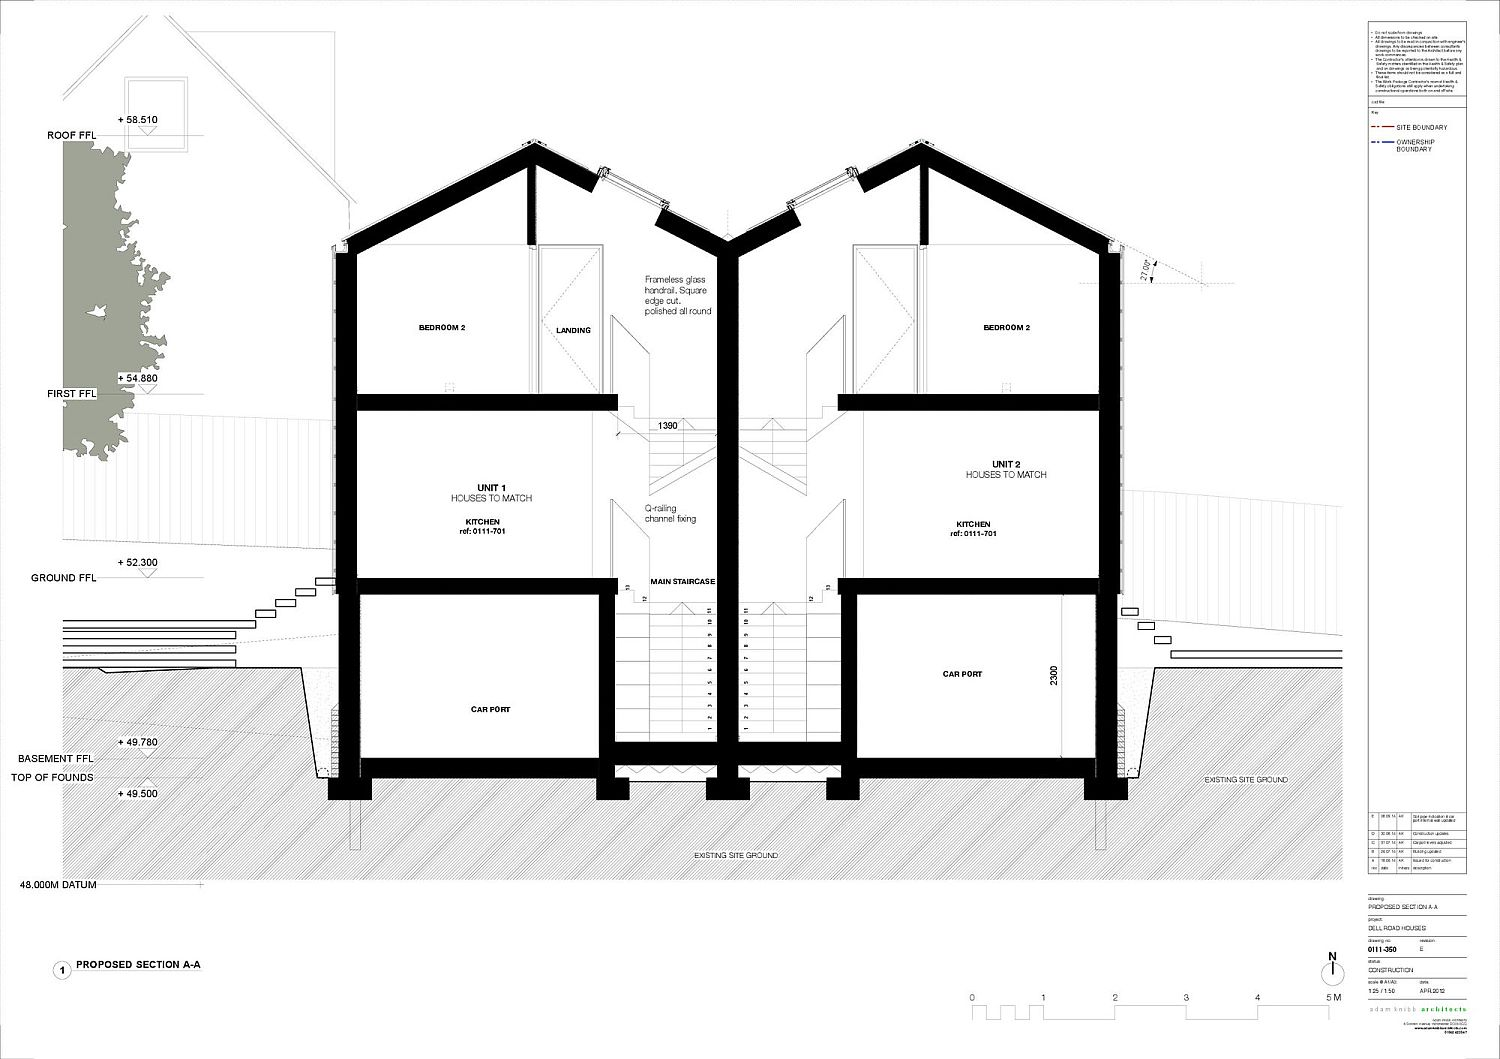 Sectional view of the Cedar Lodges